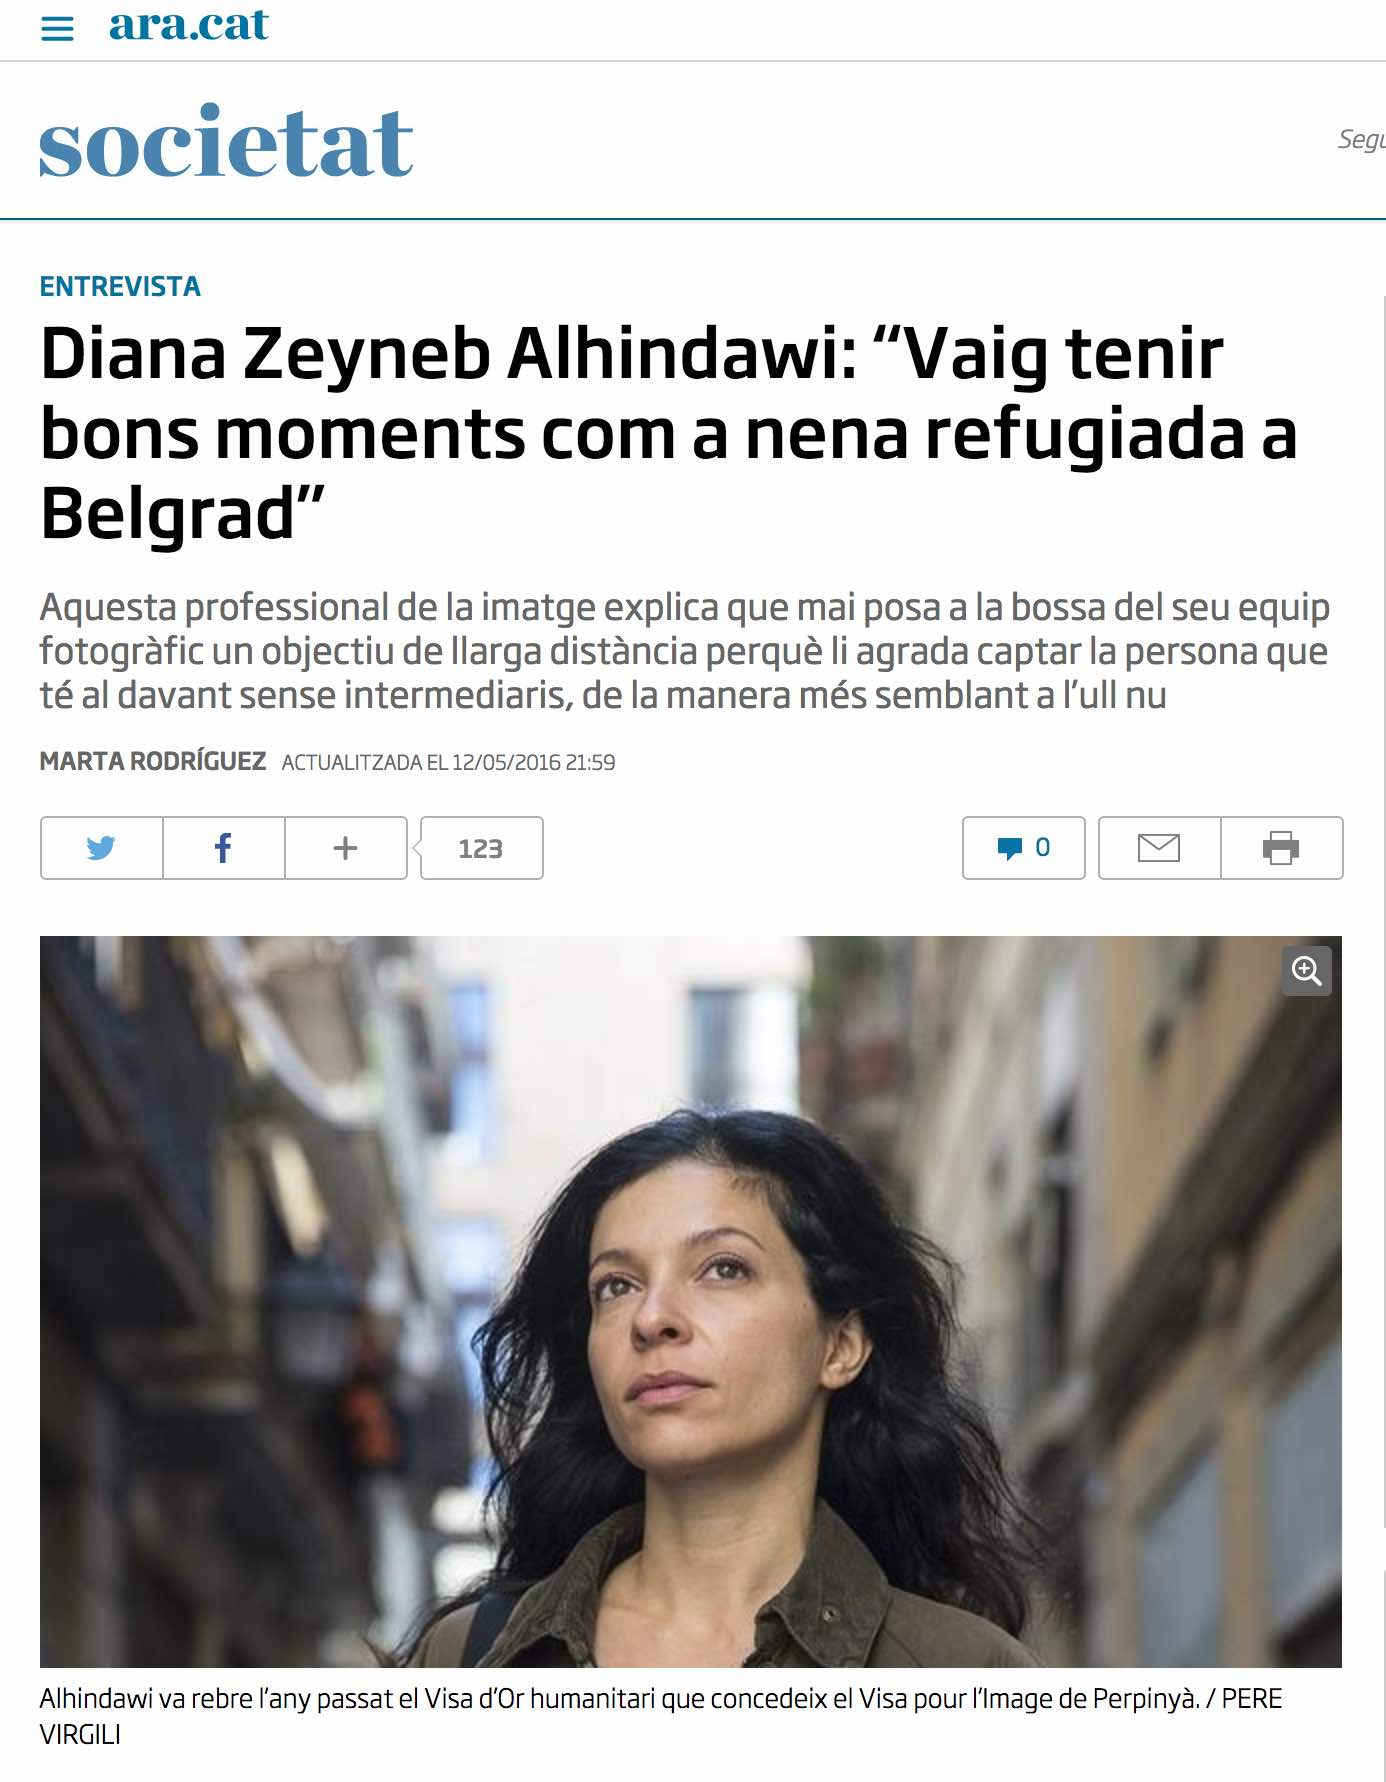 "CLICK on title to link to full article     Diana Zeyneb Alhindawi: ""Vaig tenir bons moments com a nena refugiada a Belgrad""  